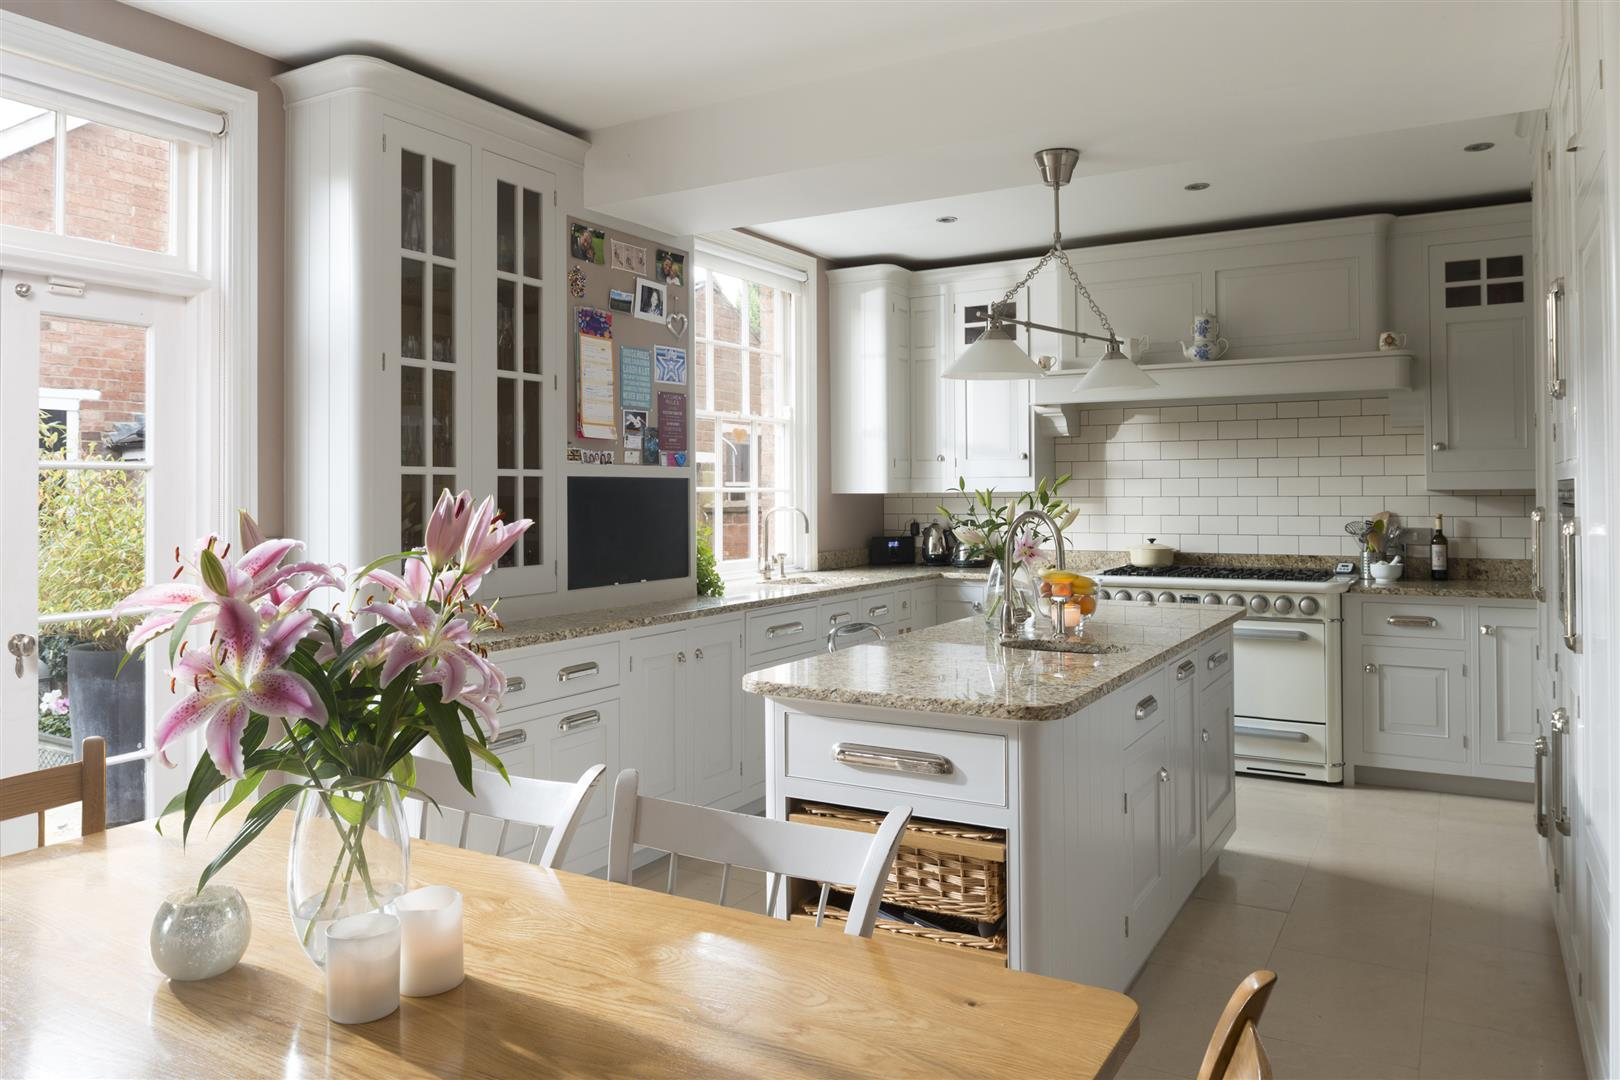 Kitchens perfect for cooking your Christmas dinner